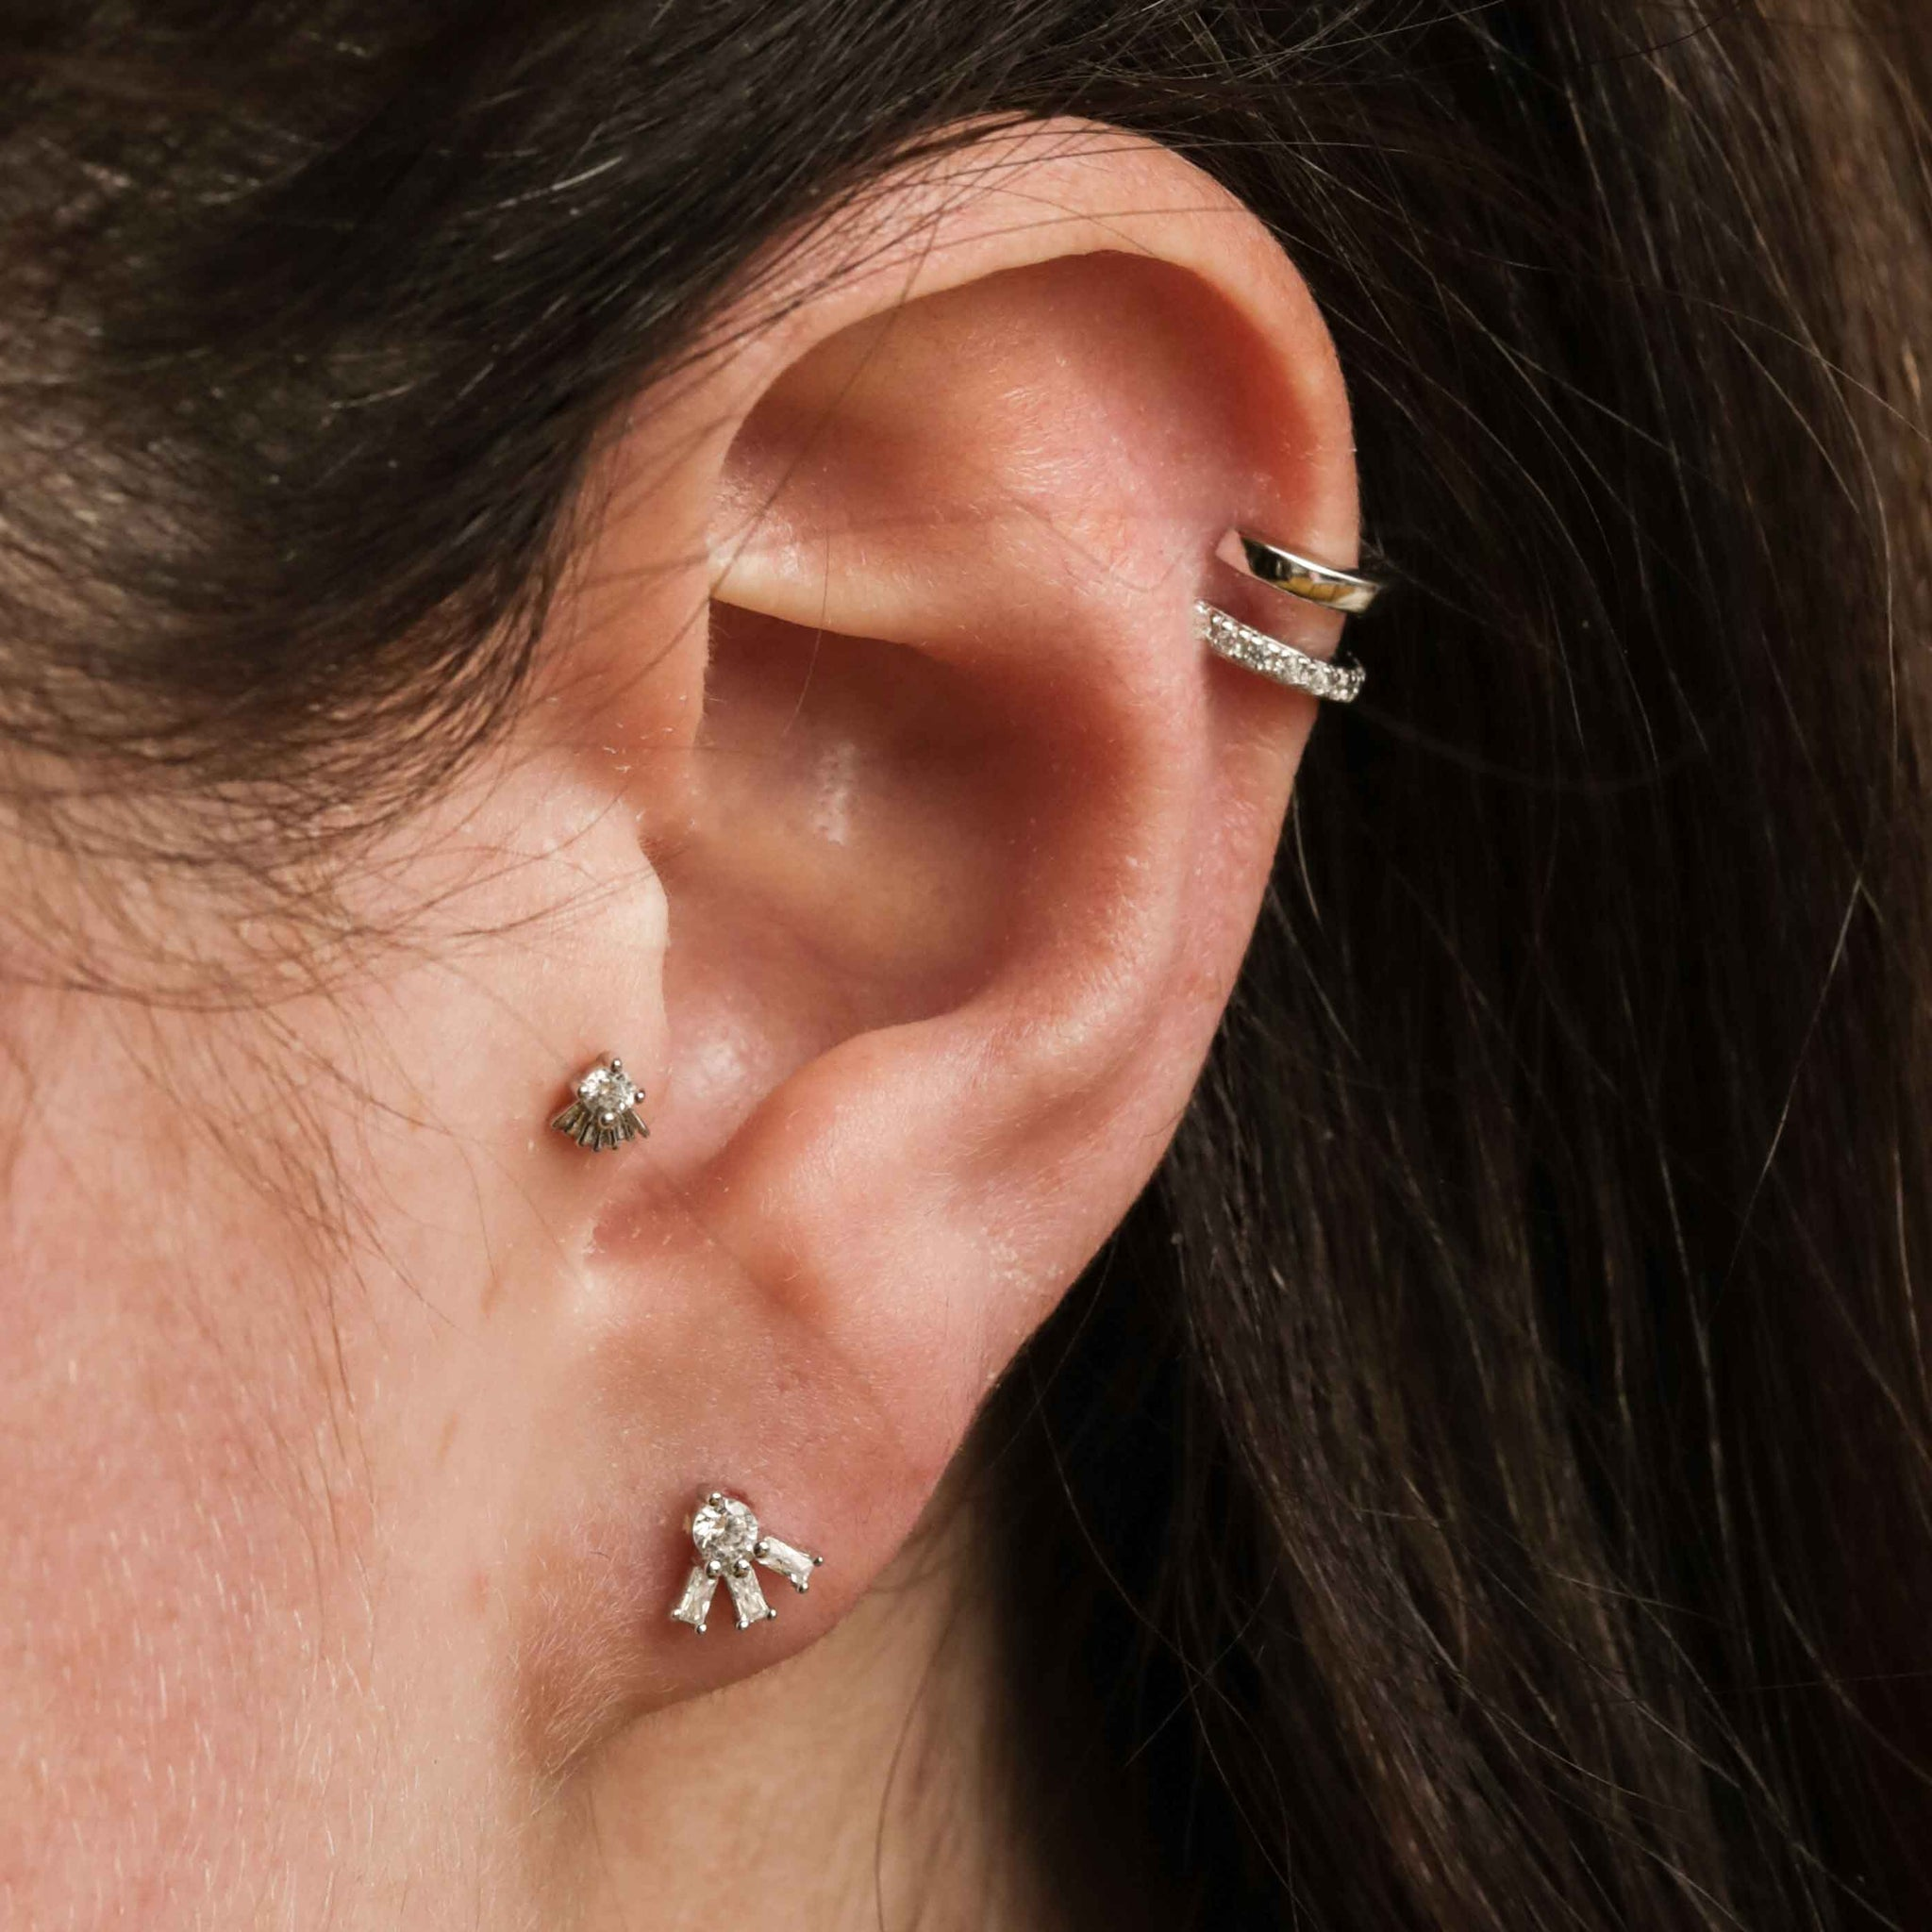 Mini Illusion Crystal Ear Cuff in Silver